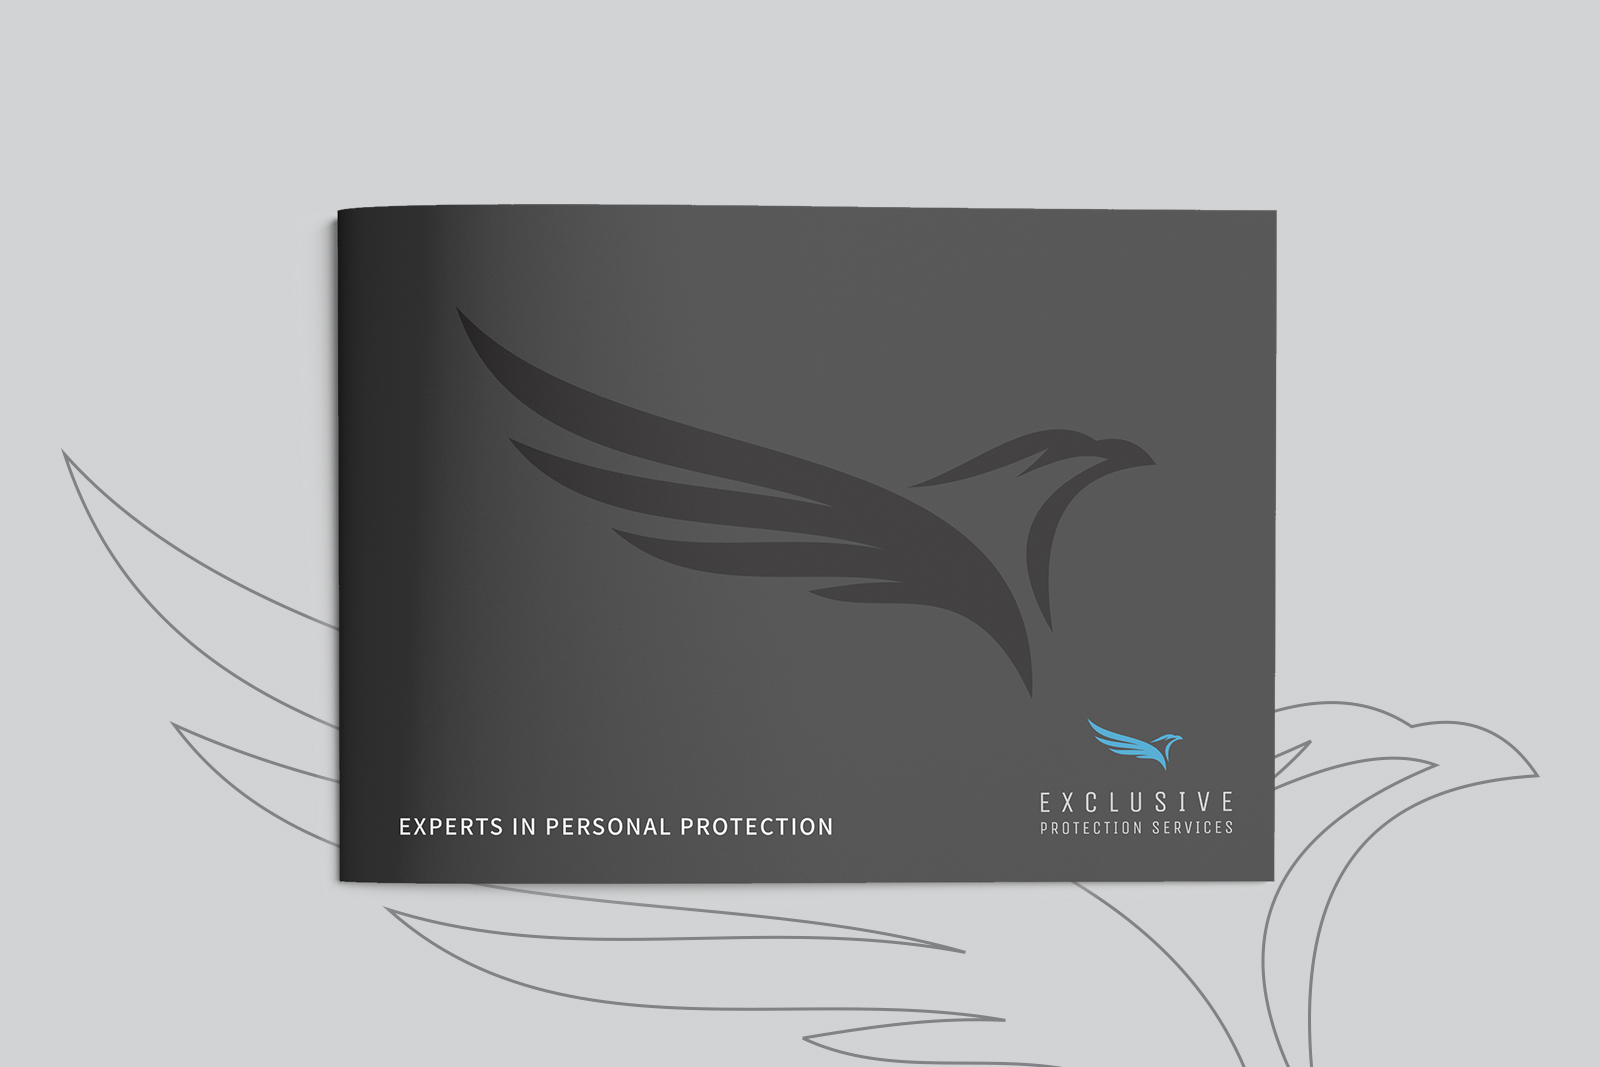 EPS, Exclusive Protection Services, Security, Catalogue